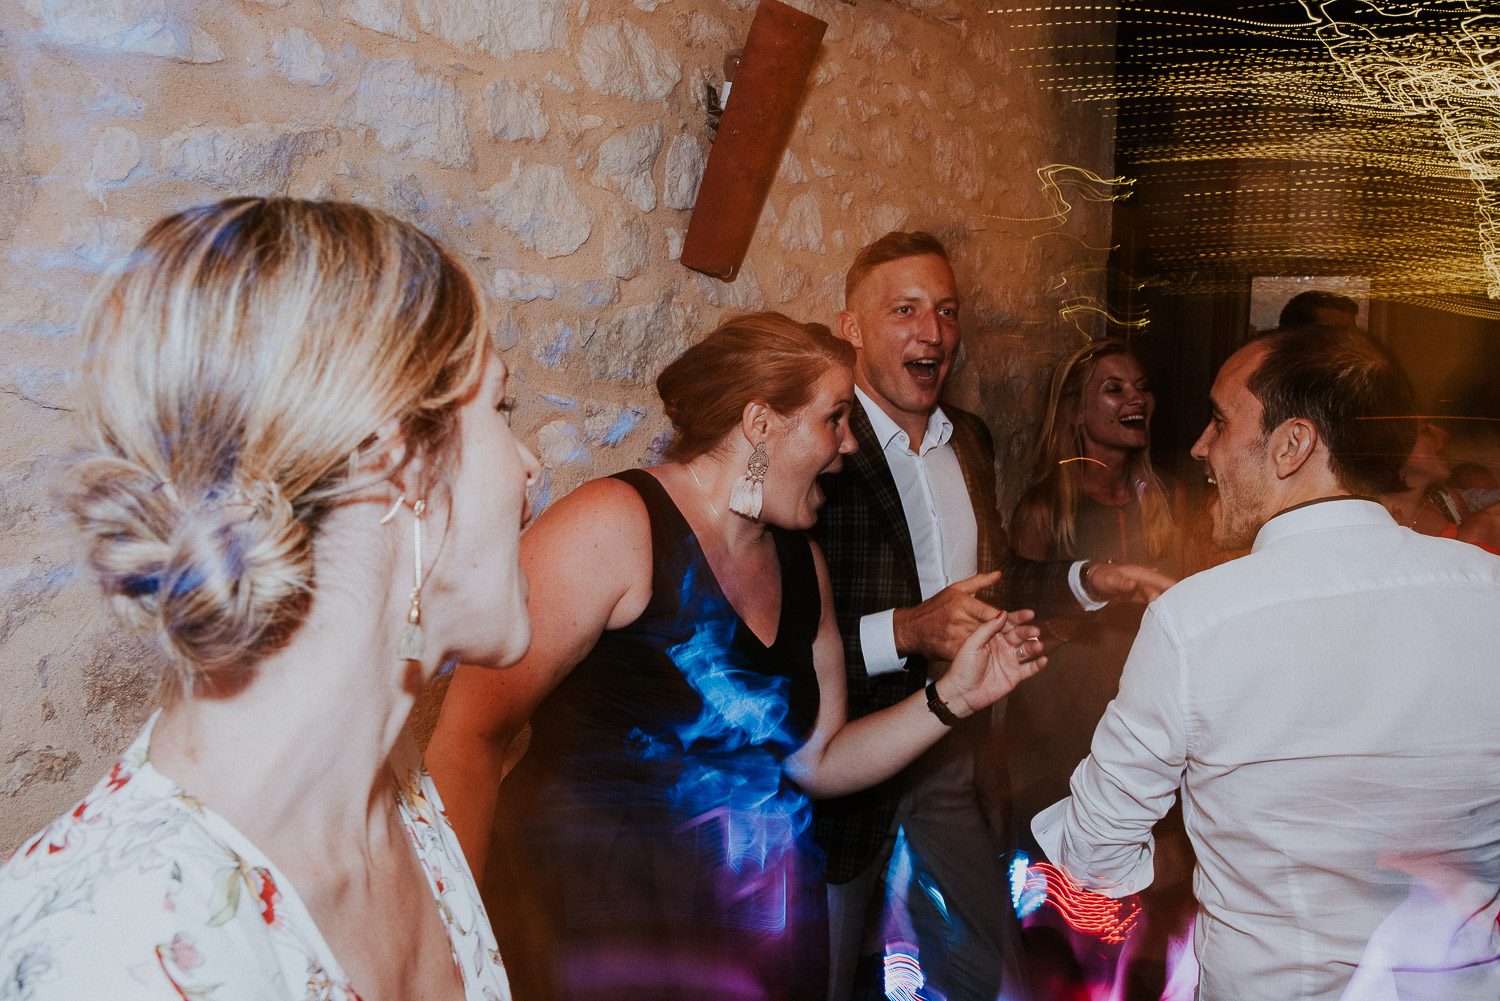 le_castelet_castres_tarn_gascony_south_west_france_family_wedding_katy_webb_photography_UK118